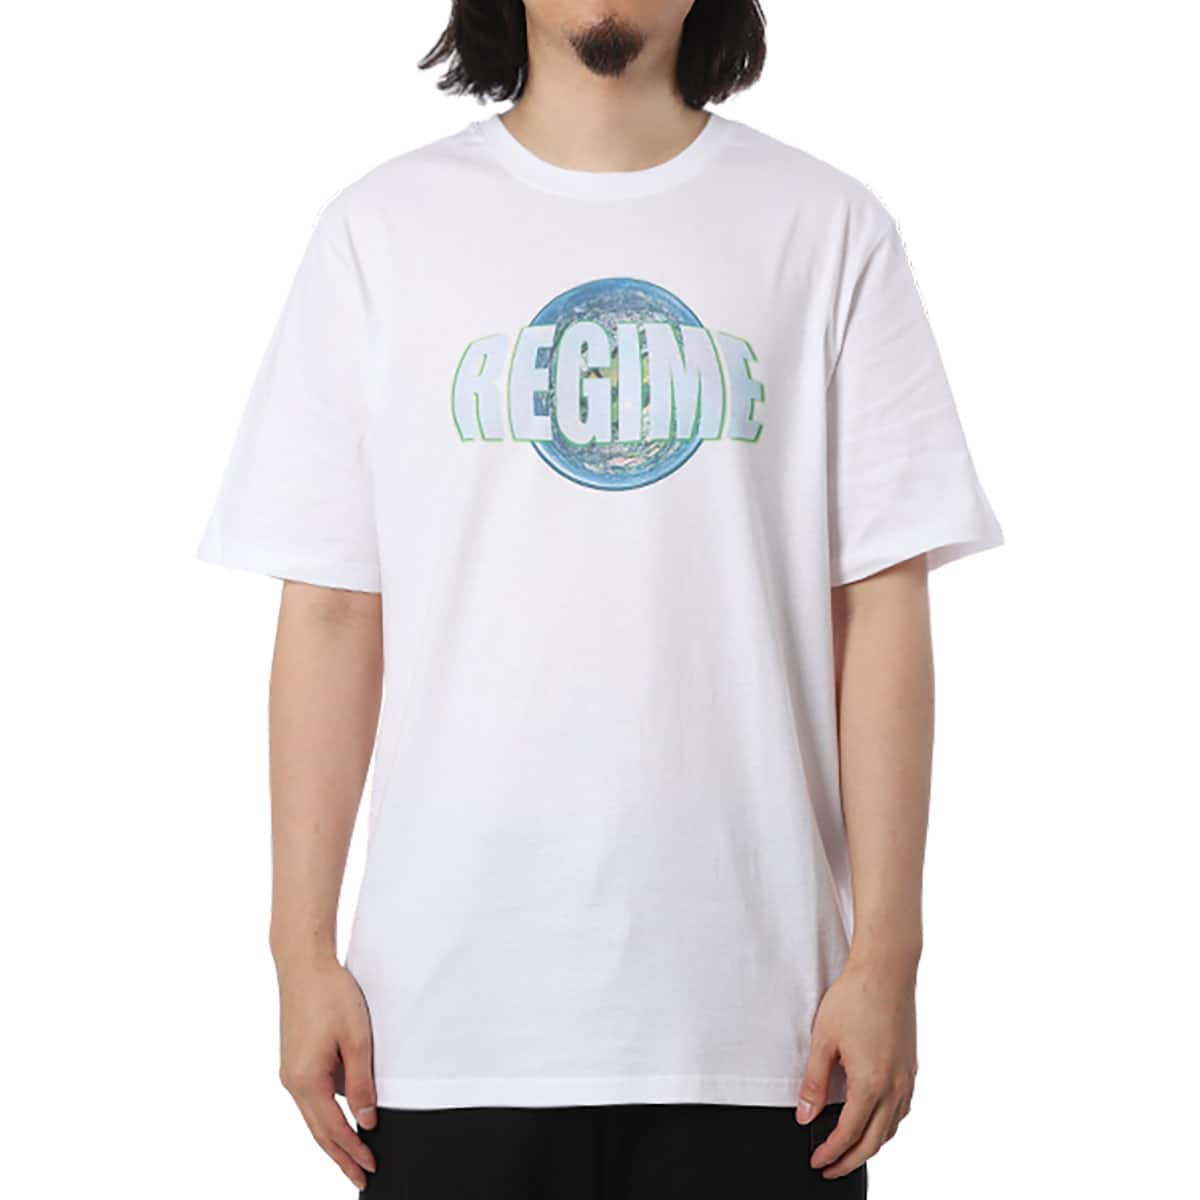 atmos x DPR TEE SHIRTS WHITE 20SU-S_photo_large